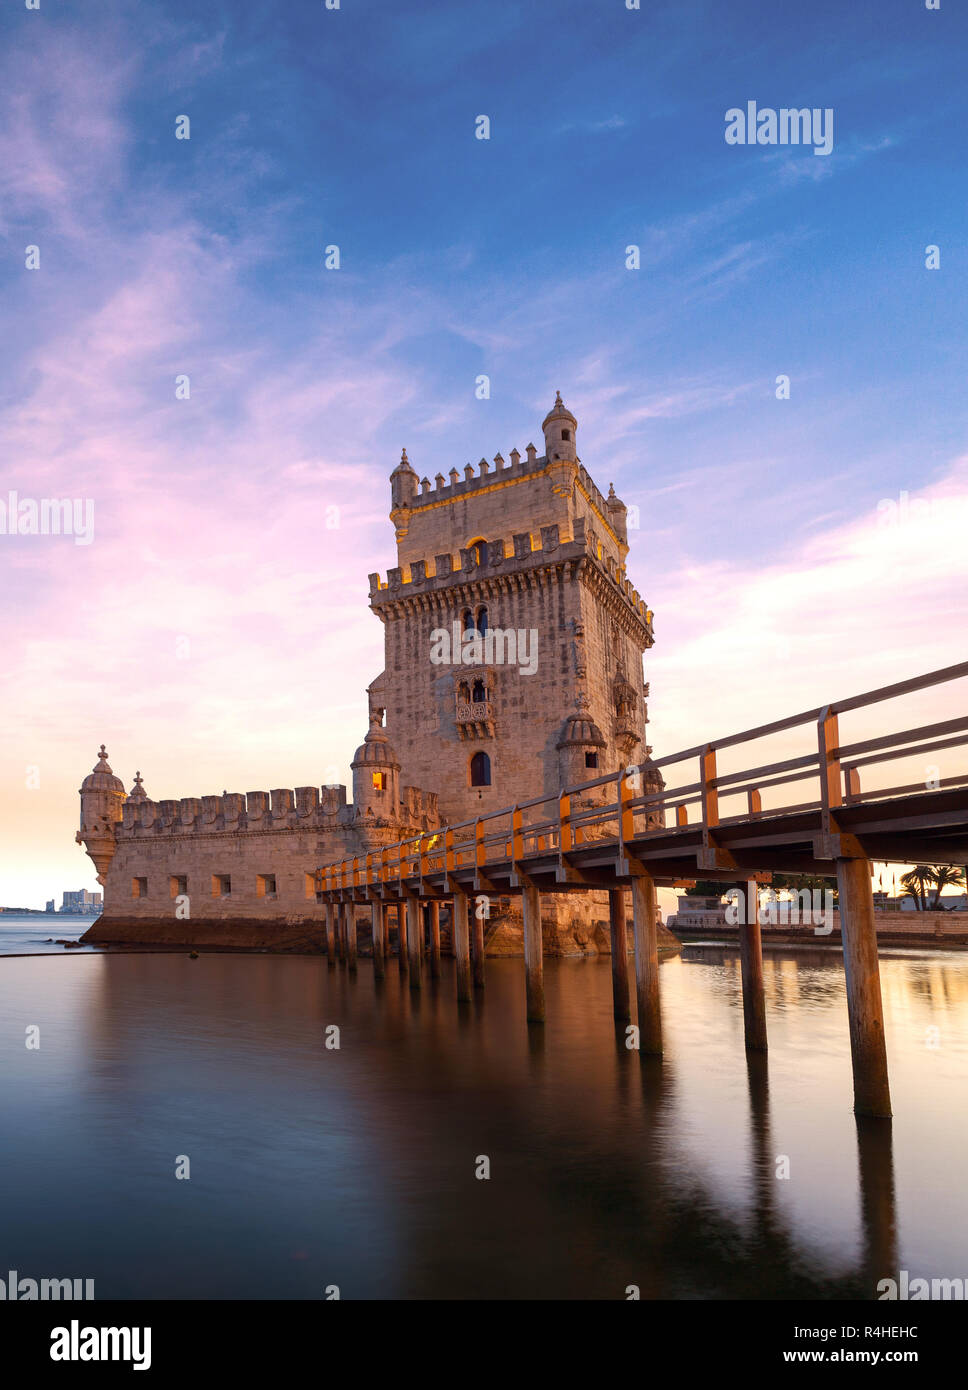 Belem tower at sunset in Lisbon, Portugal Stock Photo